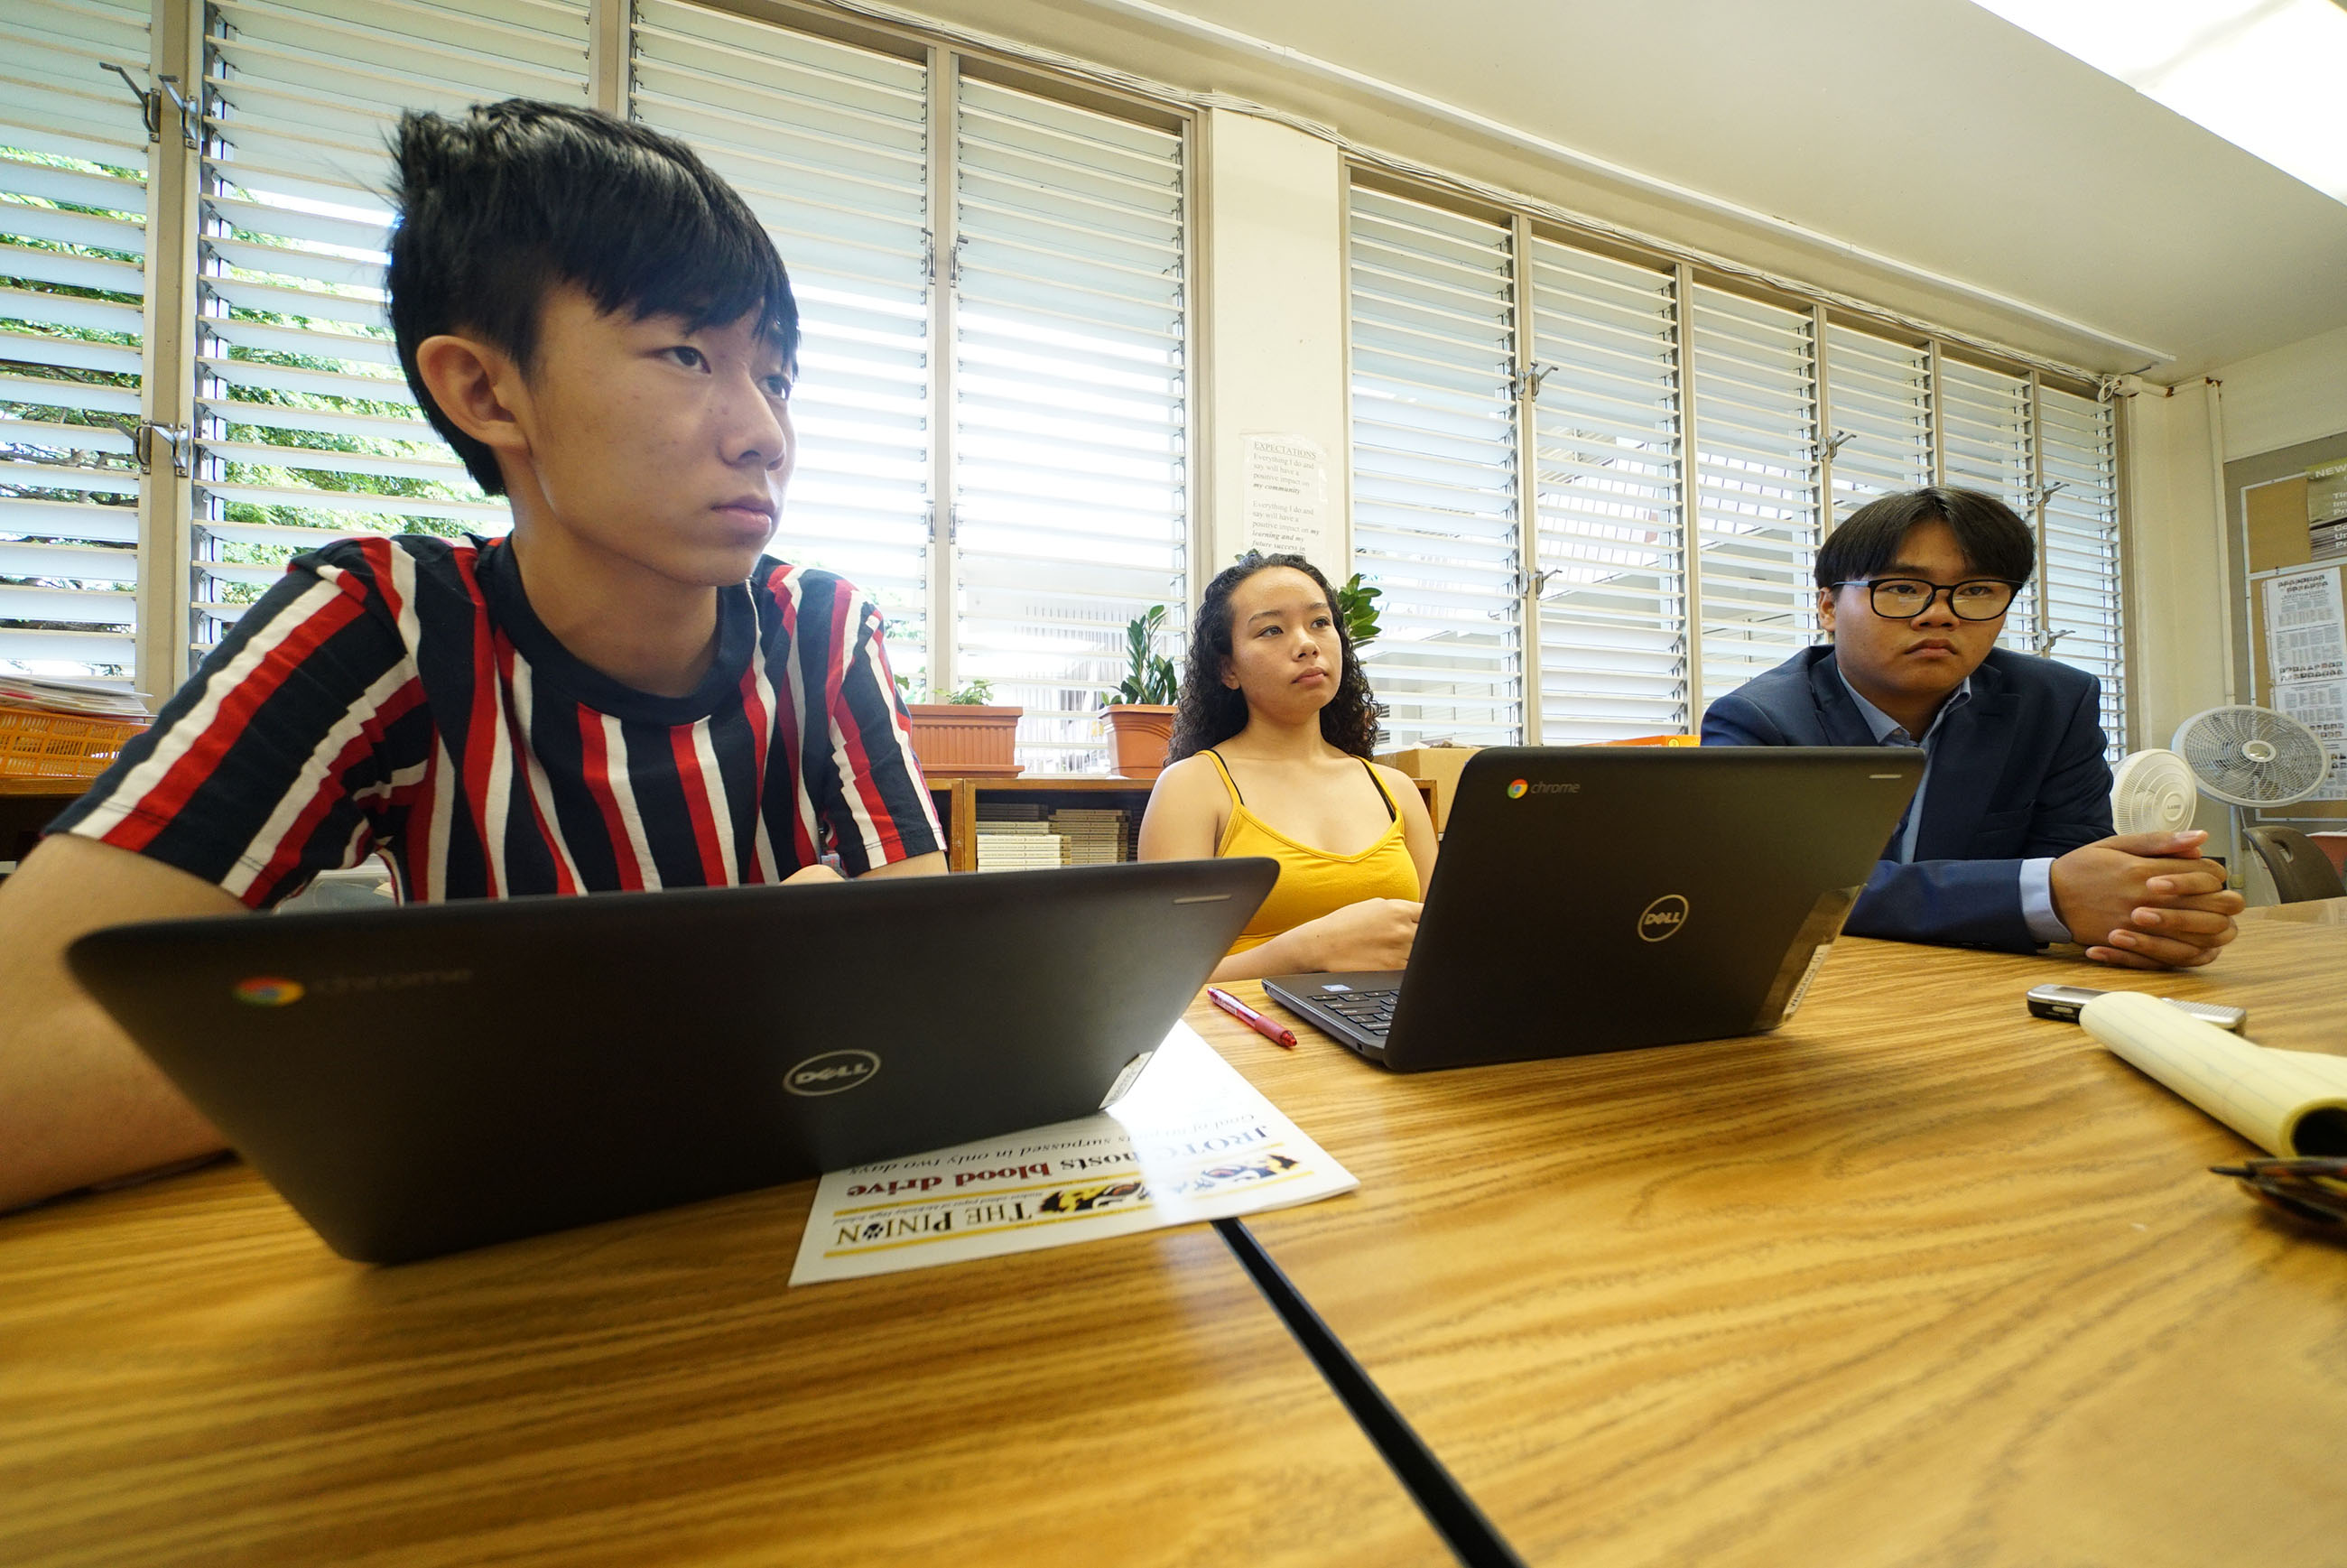 L-R, 16-yr-old Kelvin Ku, 16-yr-old Alexandria Buchanan and right, 17-yr-old Thompson Wong in Cindy Reves' journalism class at McKinley High School.